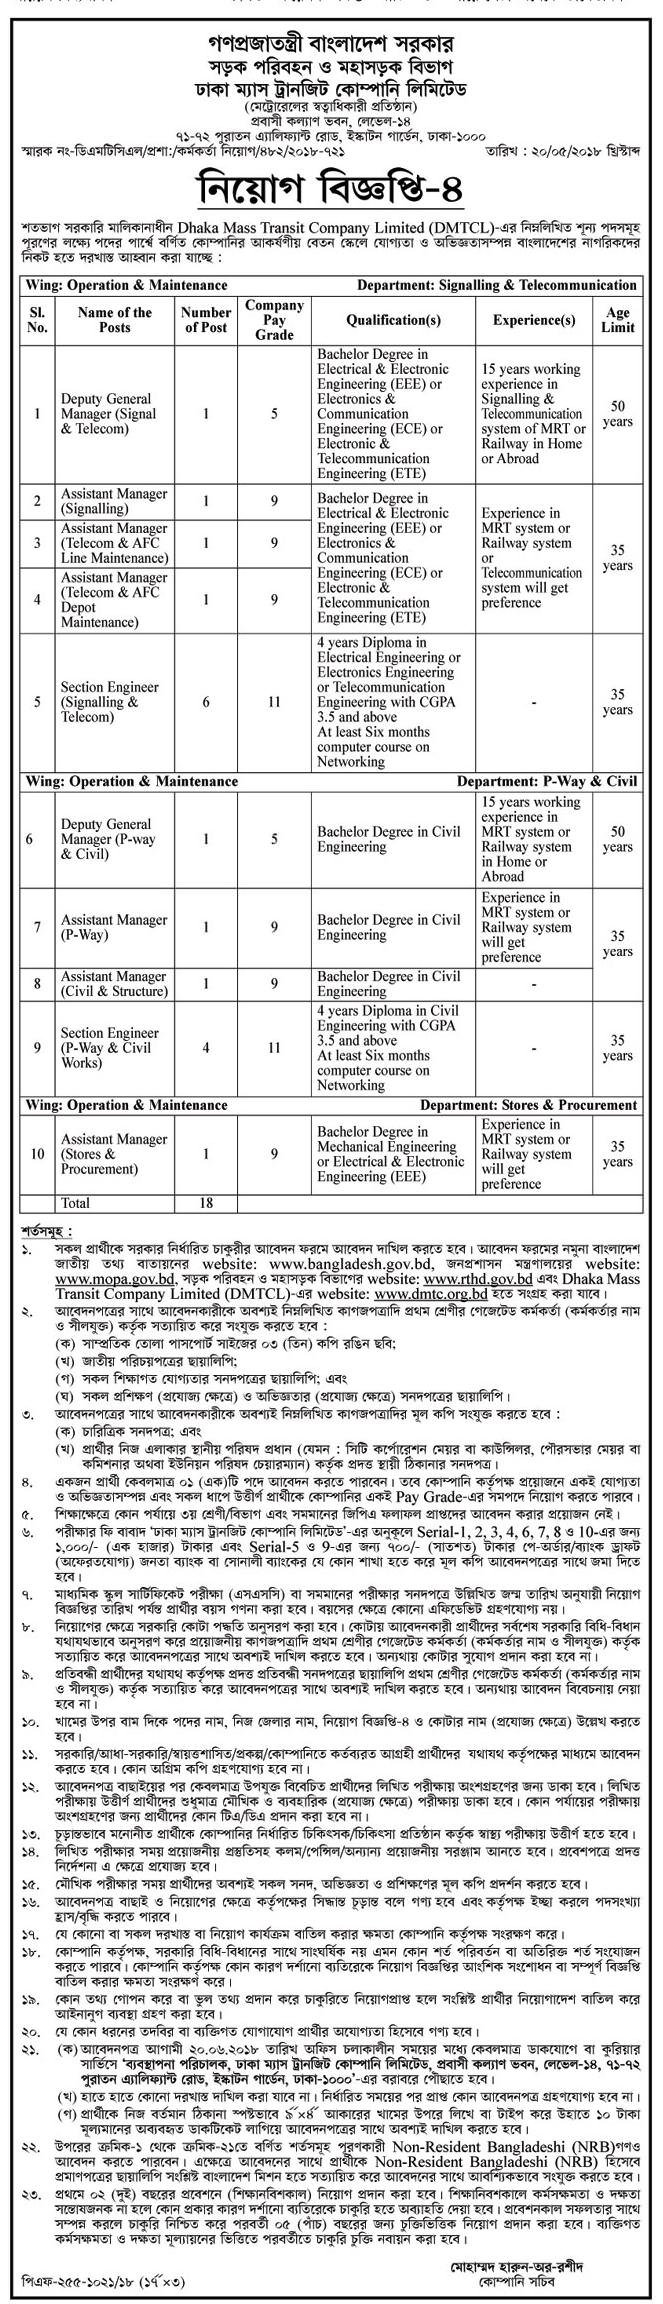 Road Transport and Highways Division Job Circular 2018